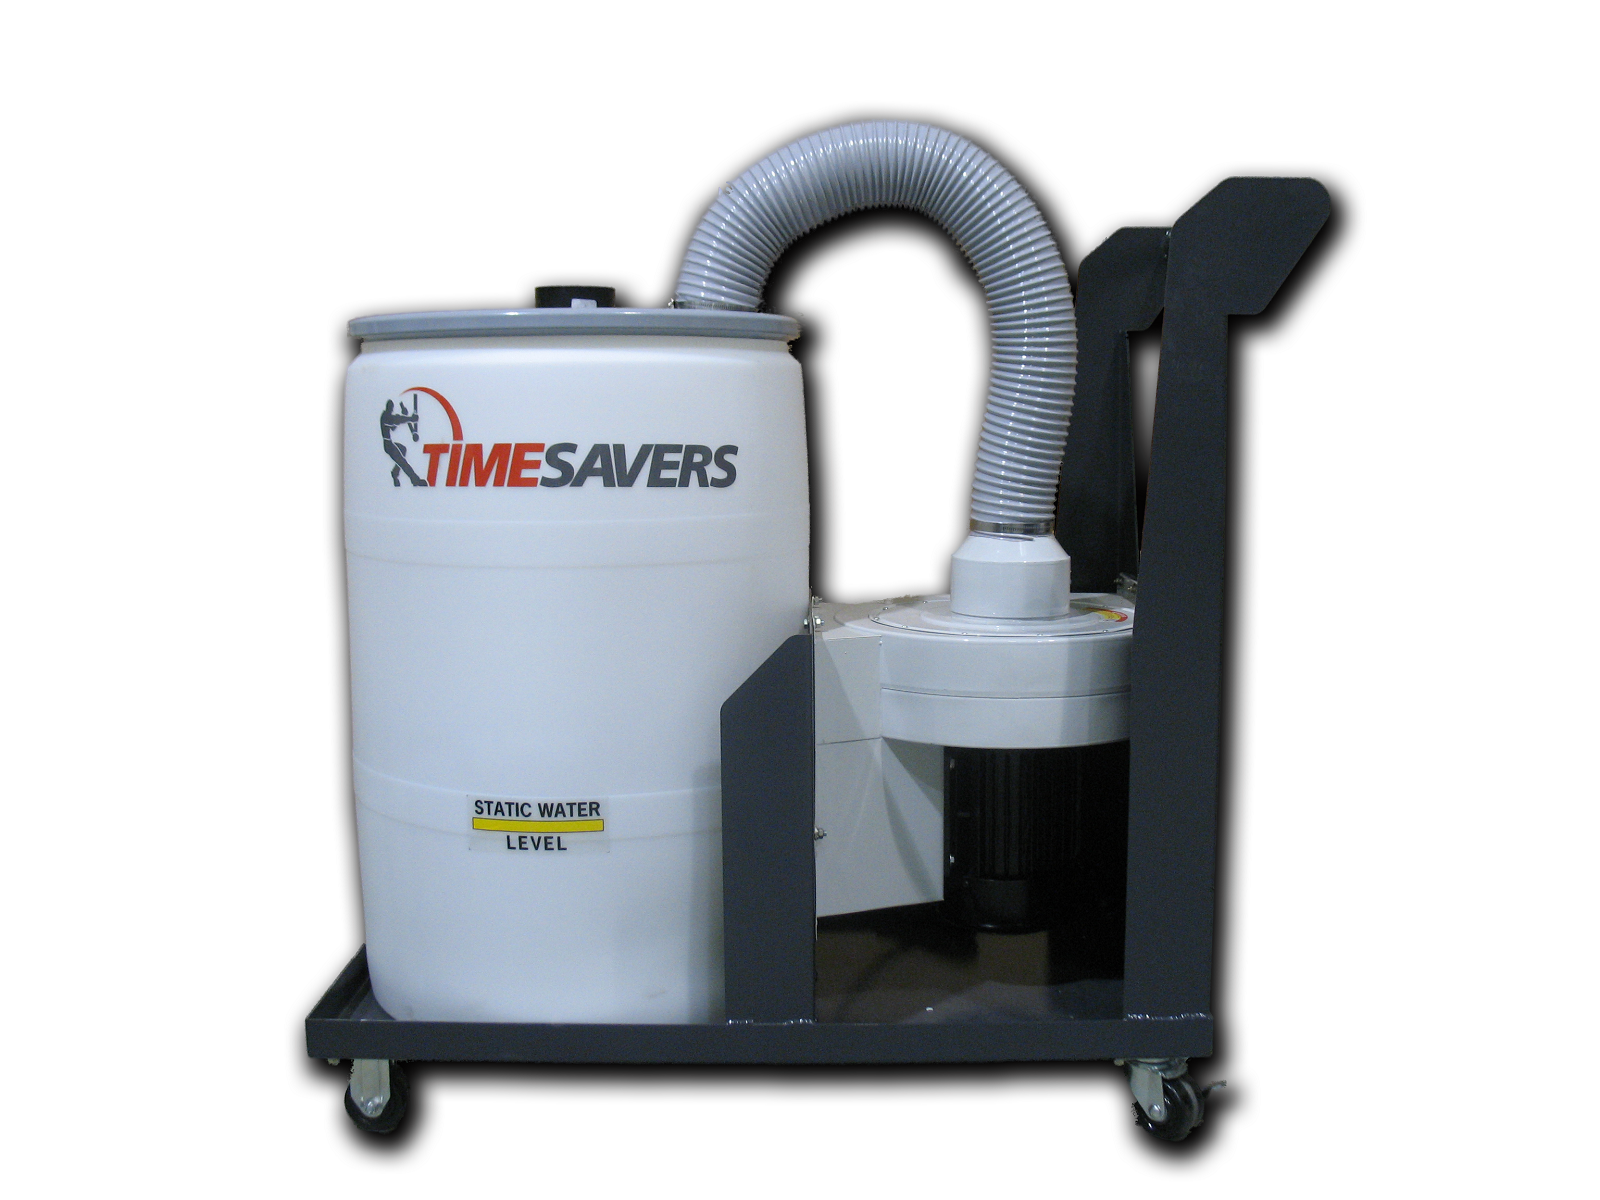 Timesavers dust collection system